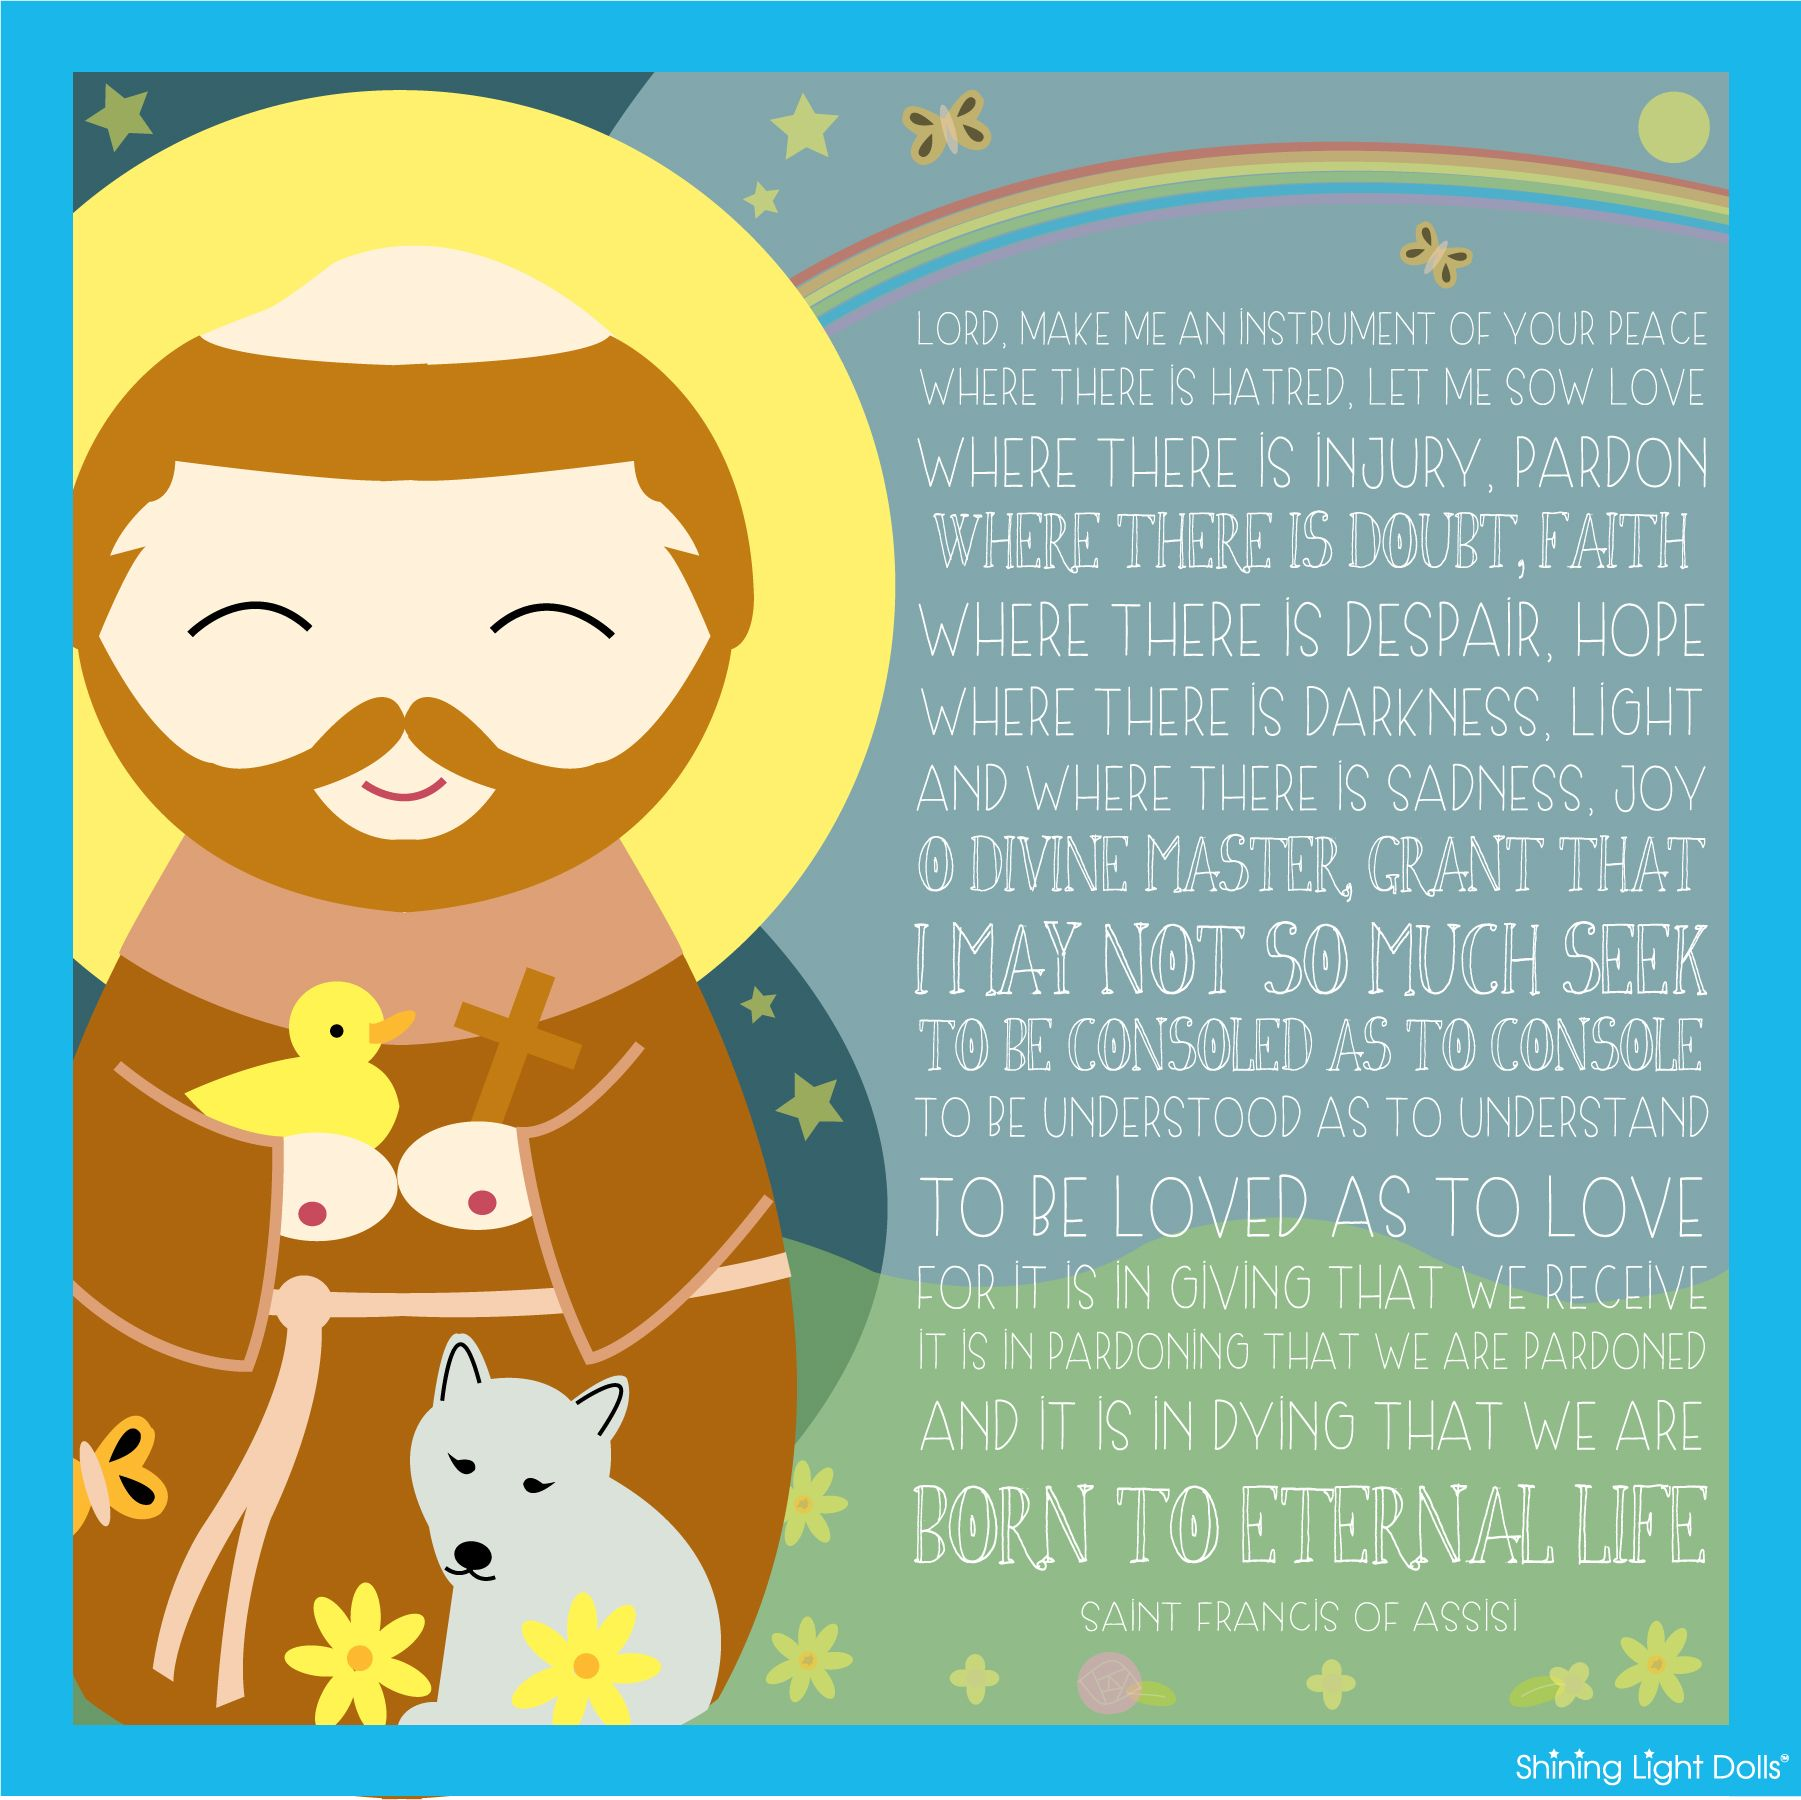 St Francis Of Assisi Quote Printable Free Other Saints Too It Is In Giving That We Receive